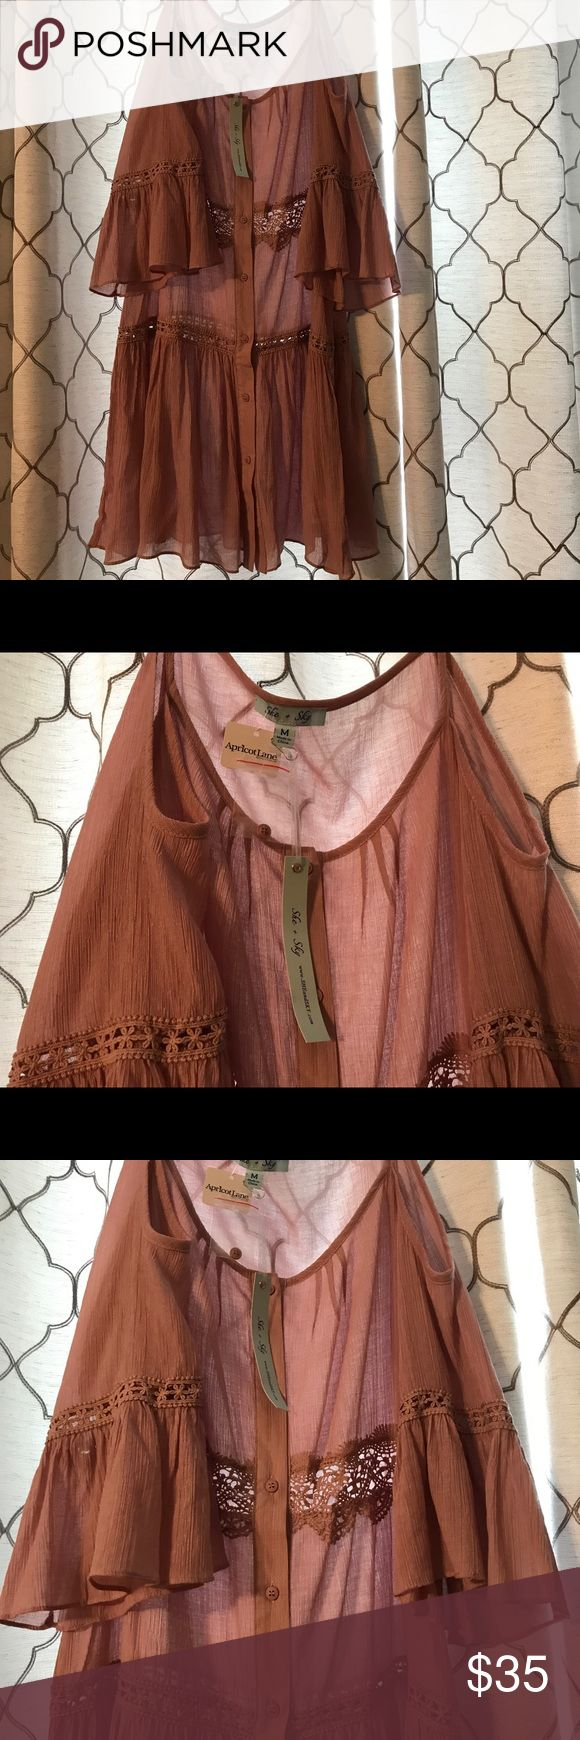 Apricot Lane Top Cute blush colored off the shoulder long tunic-like top or dress from the Apricot Lane boutique. Semi-shear. Size medium. NEVER WORN. apricot lane Tops Tunics